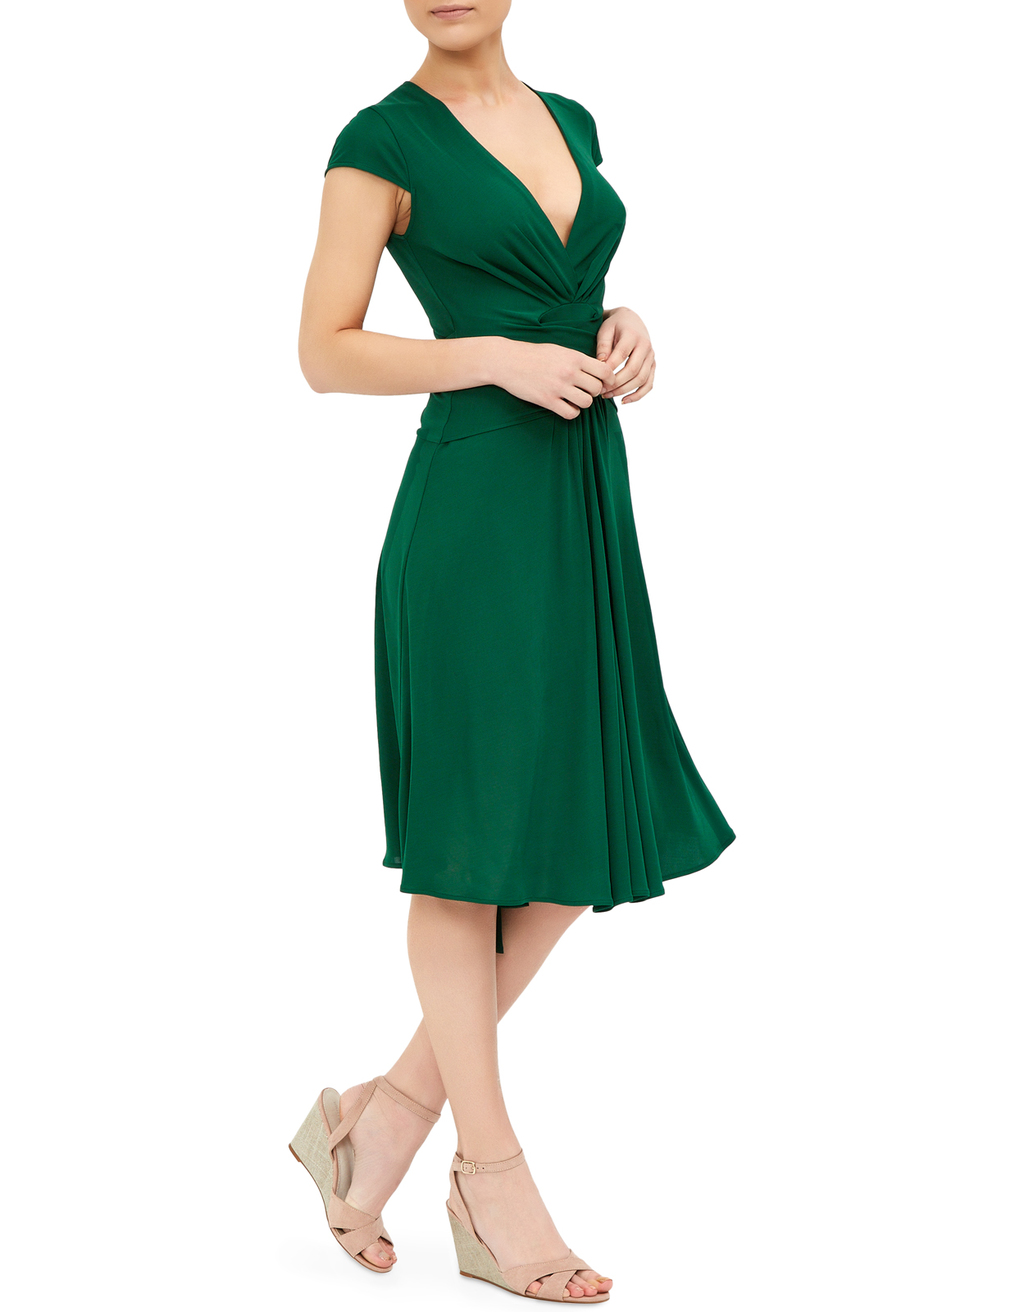 Fernanda Dress - style: faux wrap/wrap; neckline: v-neck; sleeve style: capped; pattern: plain; waist detail: flattering waist detail; predominant colour: emerald green; occasions: casual, evening, occasion; length: on the knee; fit: soft a-line; fibres: polyester/polyamide - stretch; hip detail: subtle/flattering hip detail; sleeve length: short sleeve; pattern type: fabric; texture group: jersey - stretchy/drapey; season: s/s 2016; wardrobe: highlight